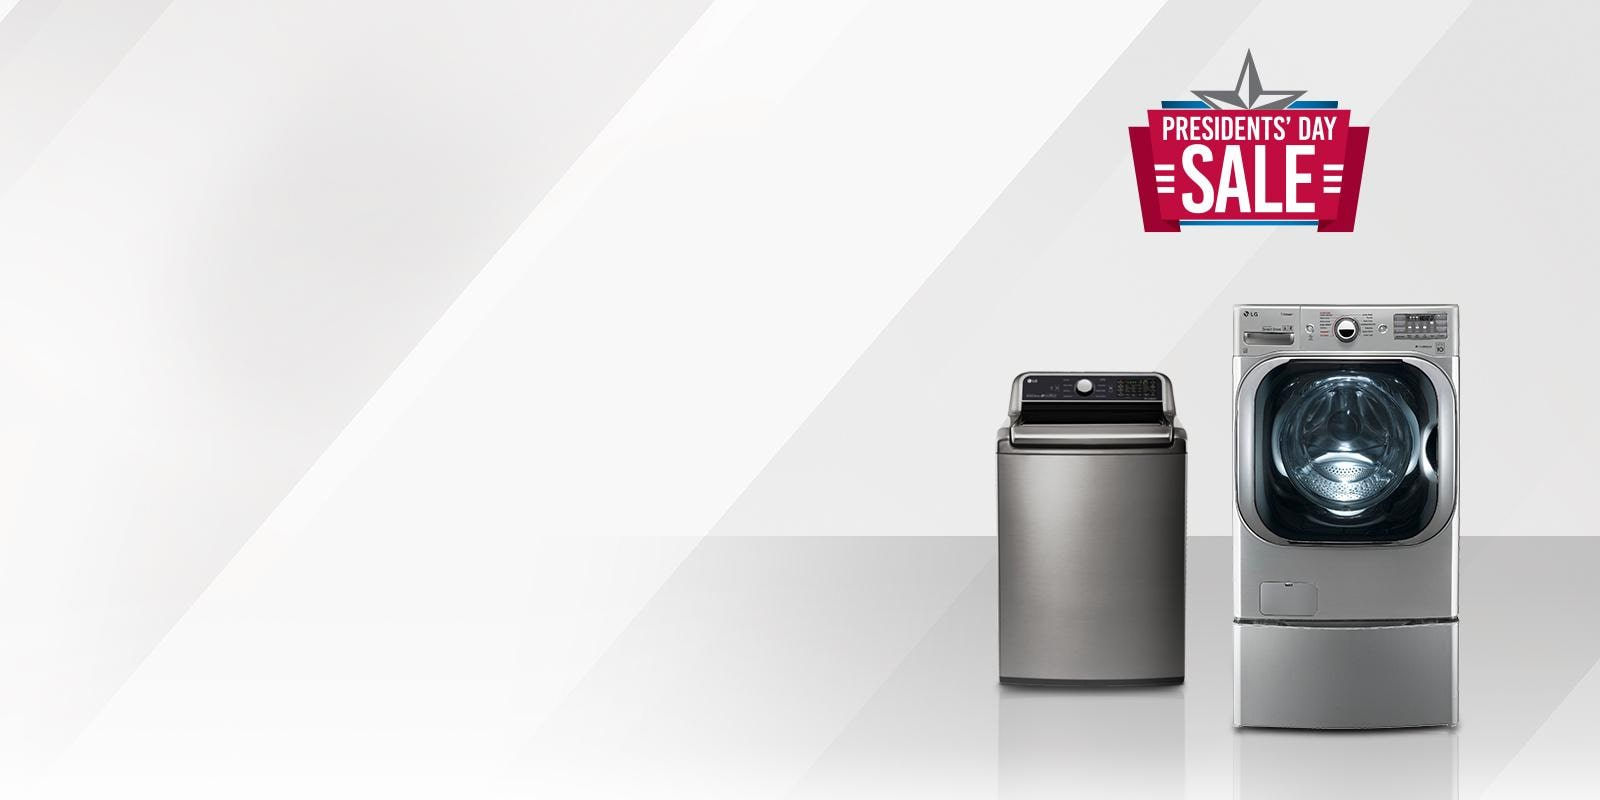 Lg Dryers High Performance Energy Efficient Dryers Lg Usa